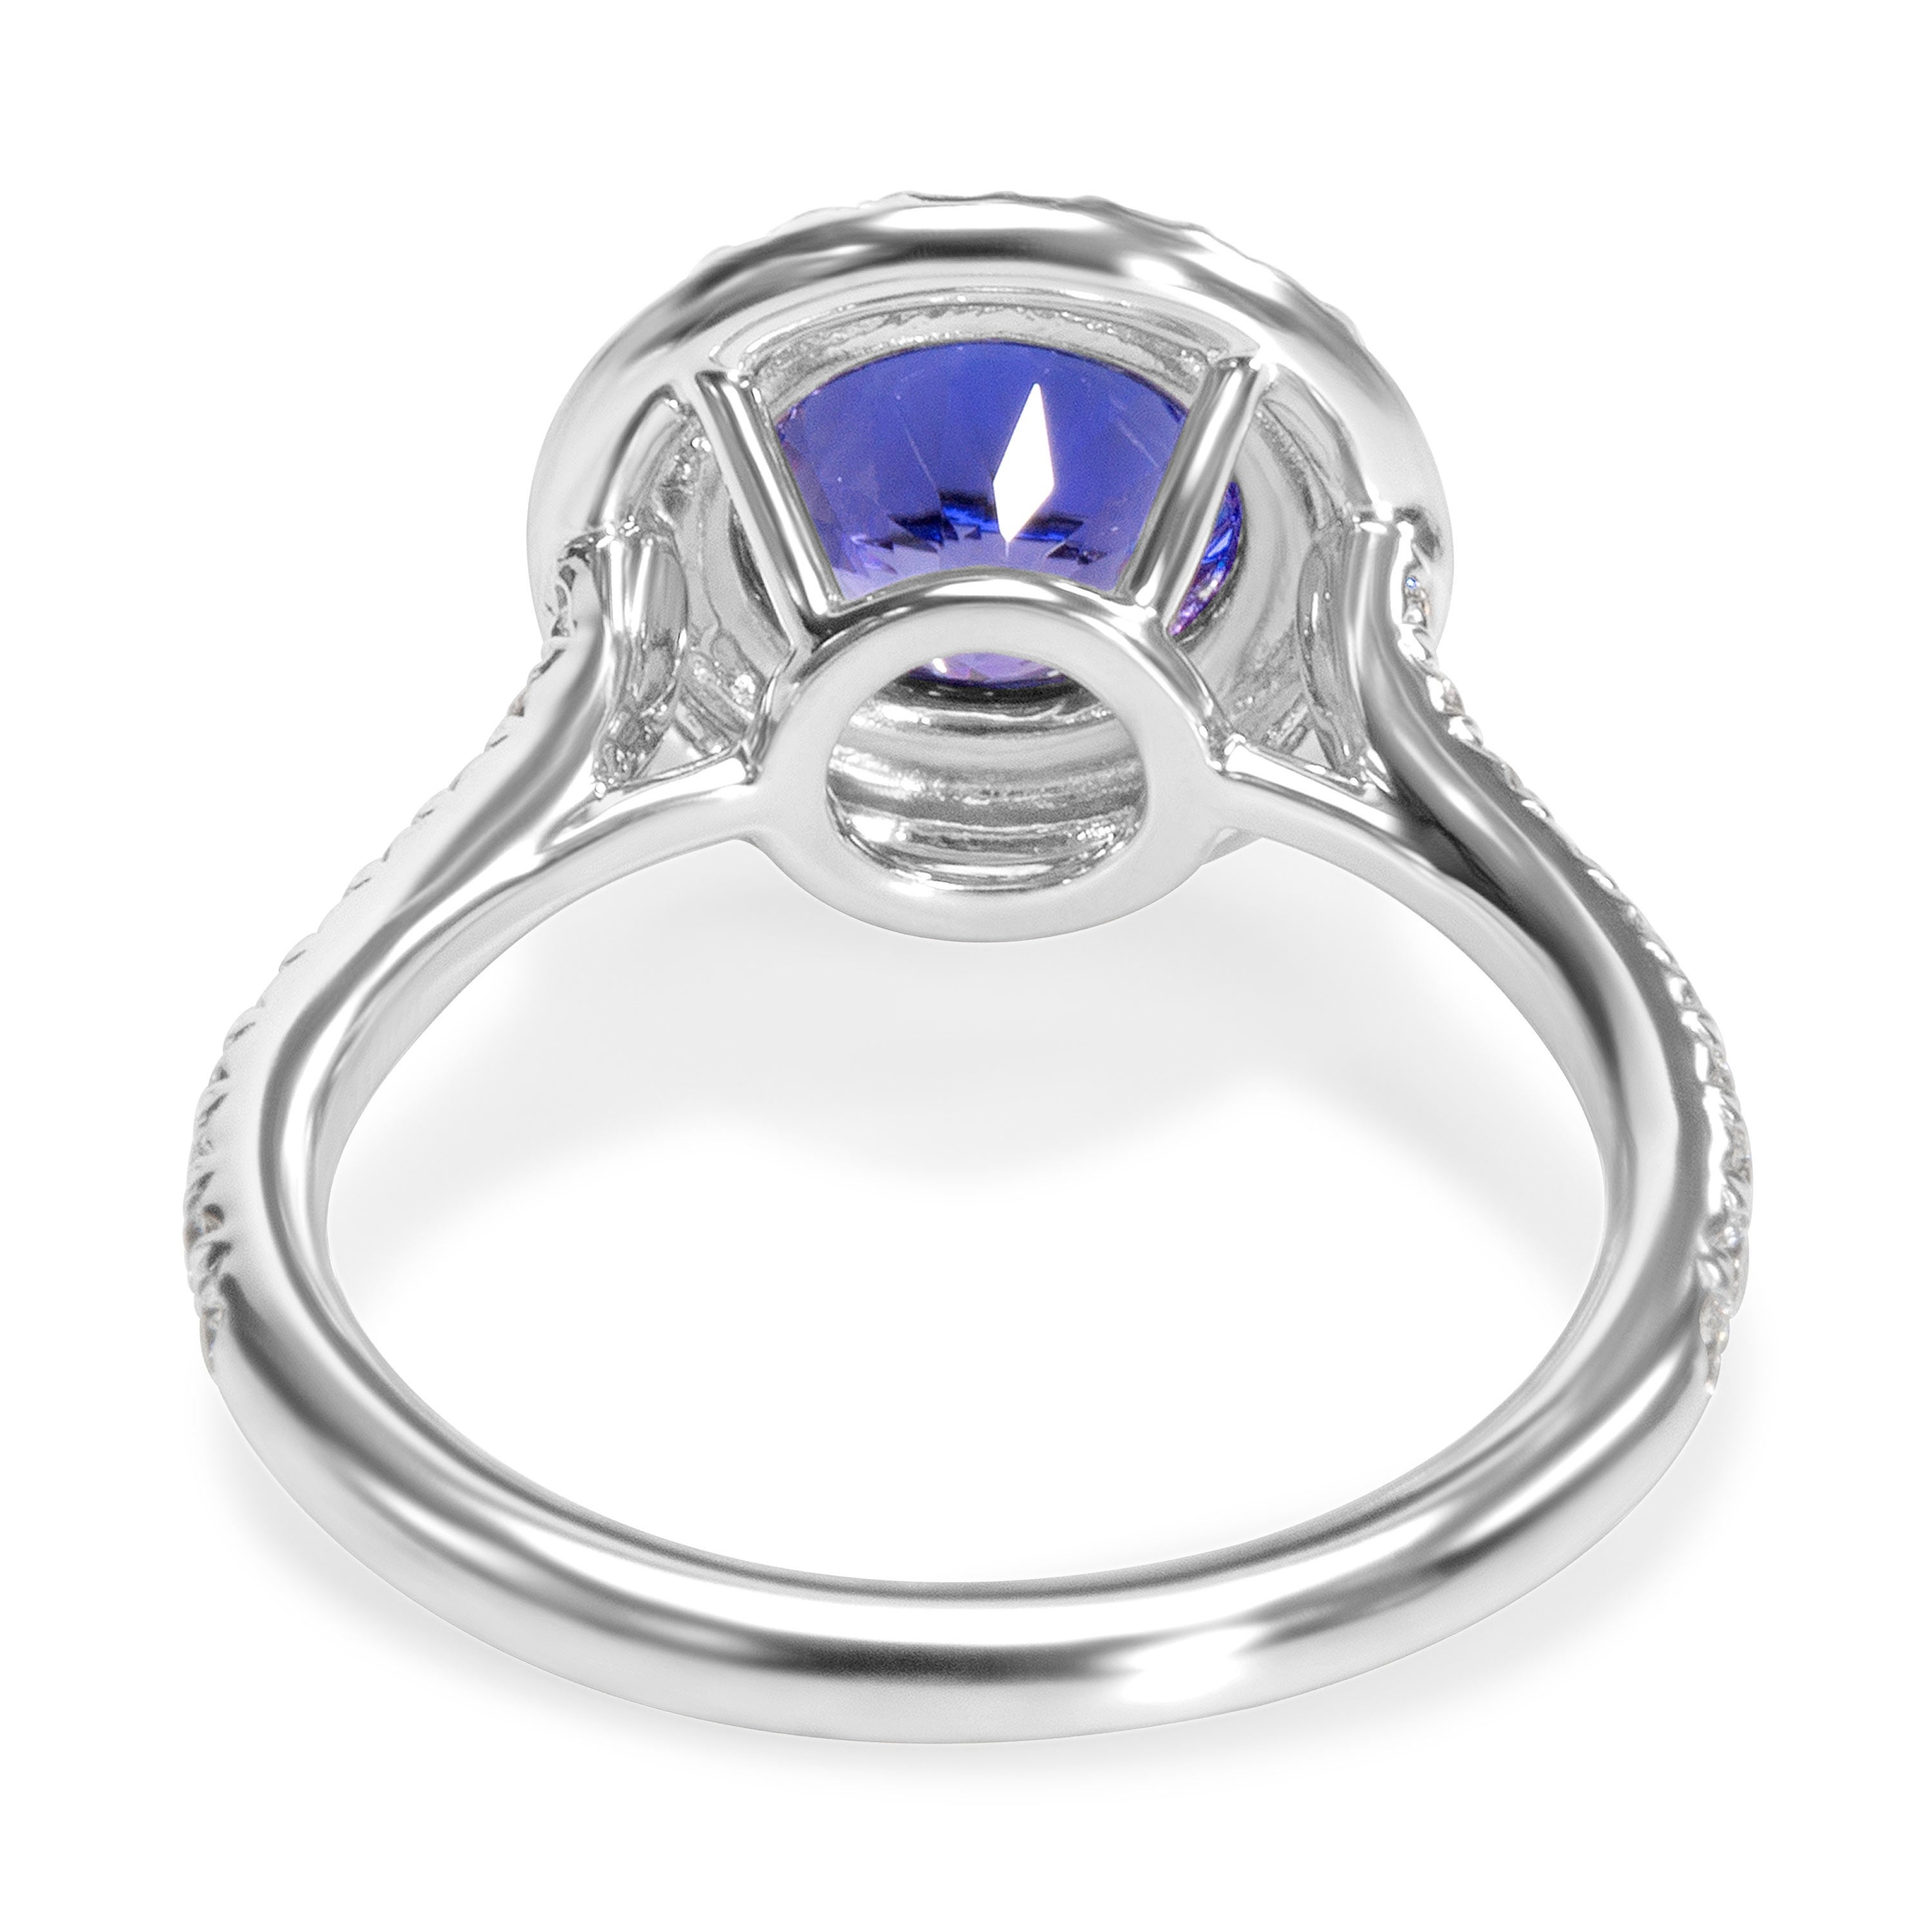 f68ed1f94 Shop Pre-Owned Tiffany & Co. Soleste Tanzanite Engagement Ring in Platinum  1.75 ctw - Free Shipping Today - Overstock - 23056044